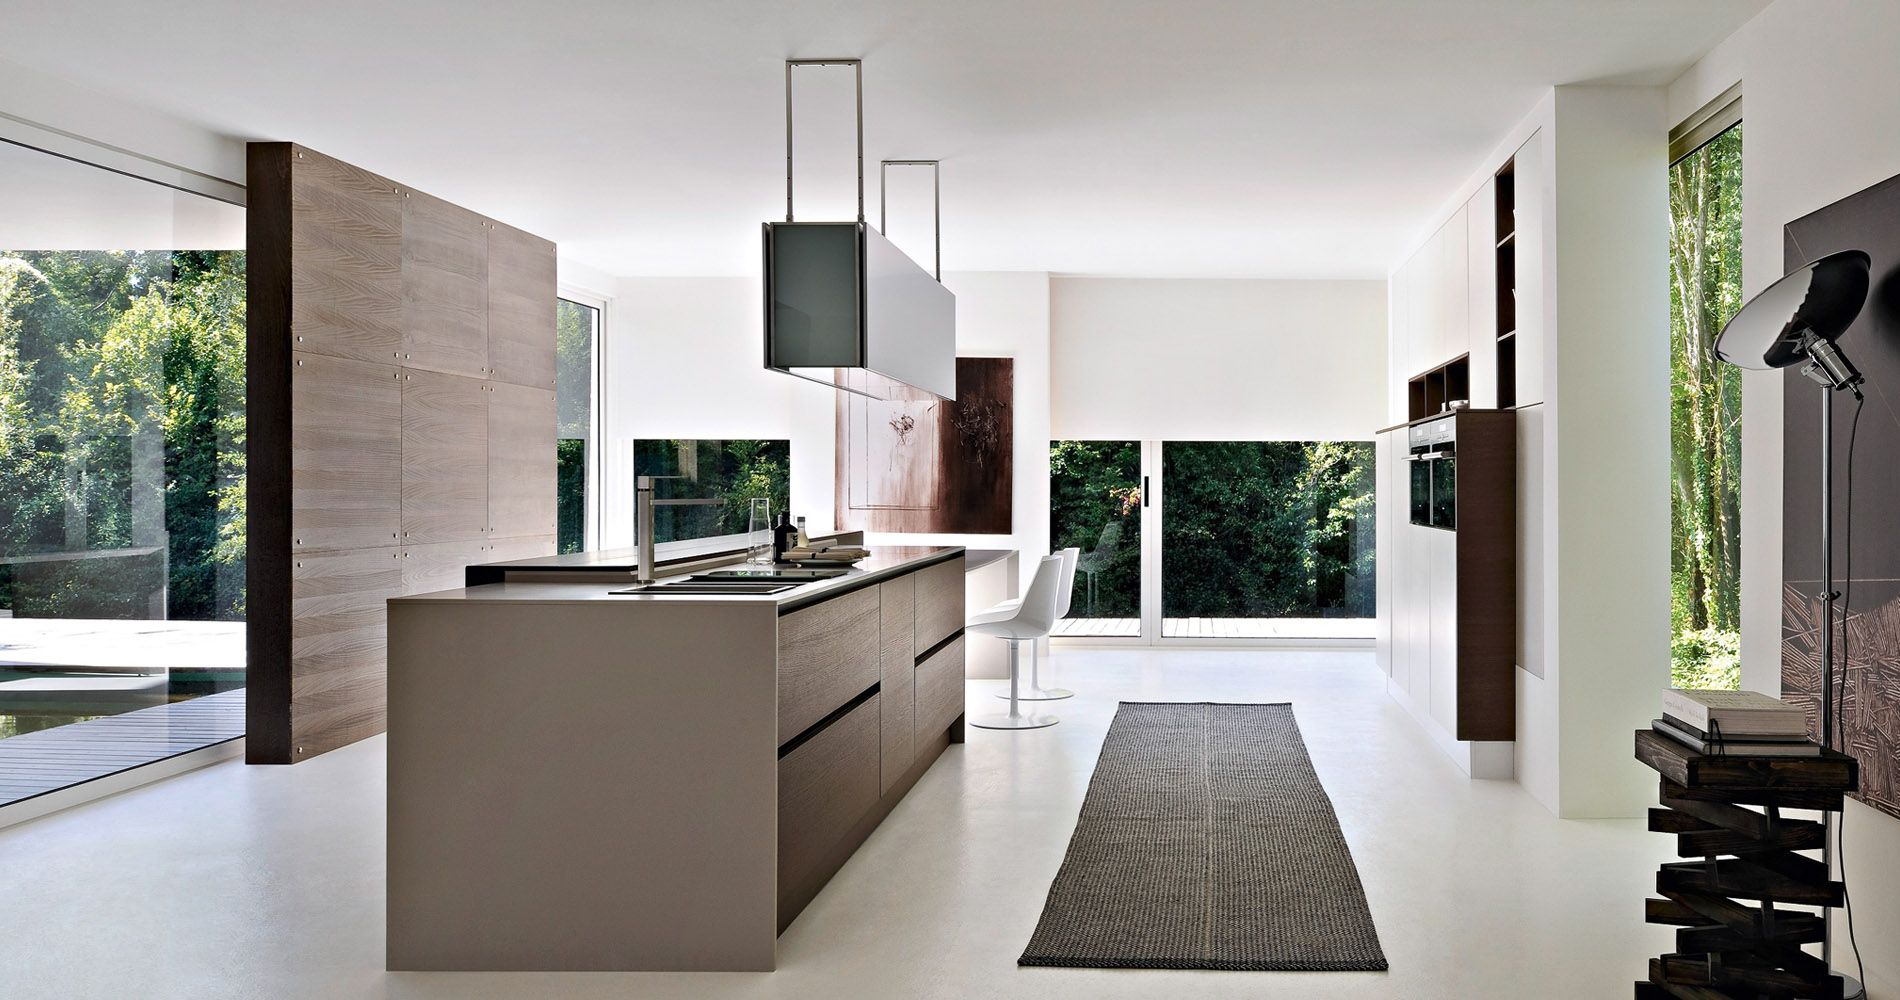 Pedini kitchen design italian german european modern for Modern german kitchen designs